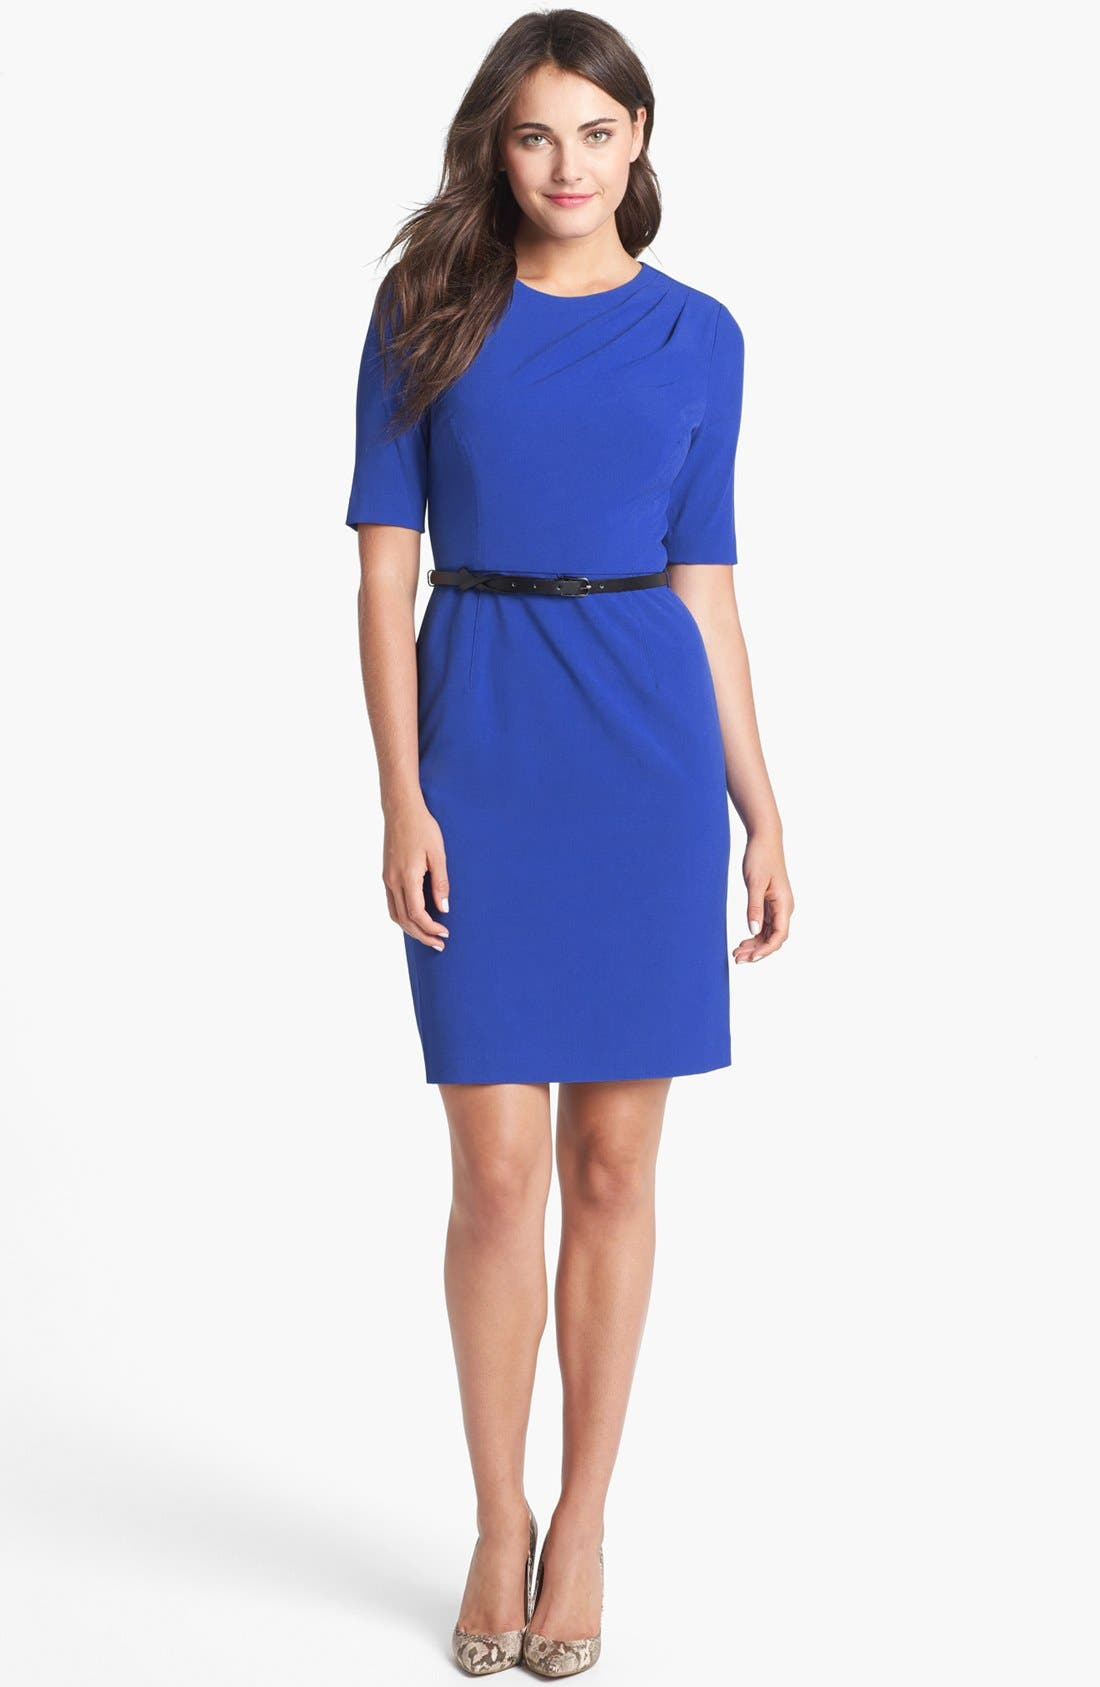 Main Image - Ivy & Blu for Maggy Boutique Sheath Dress